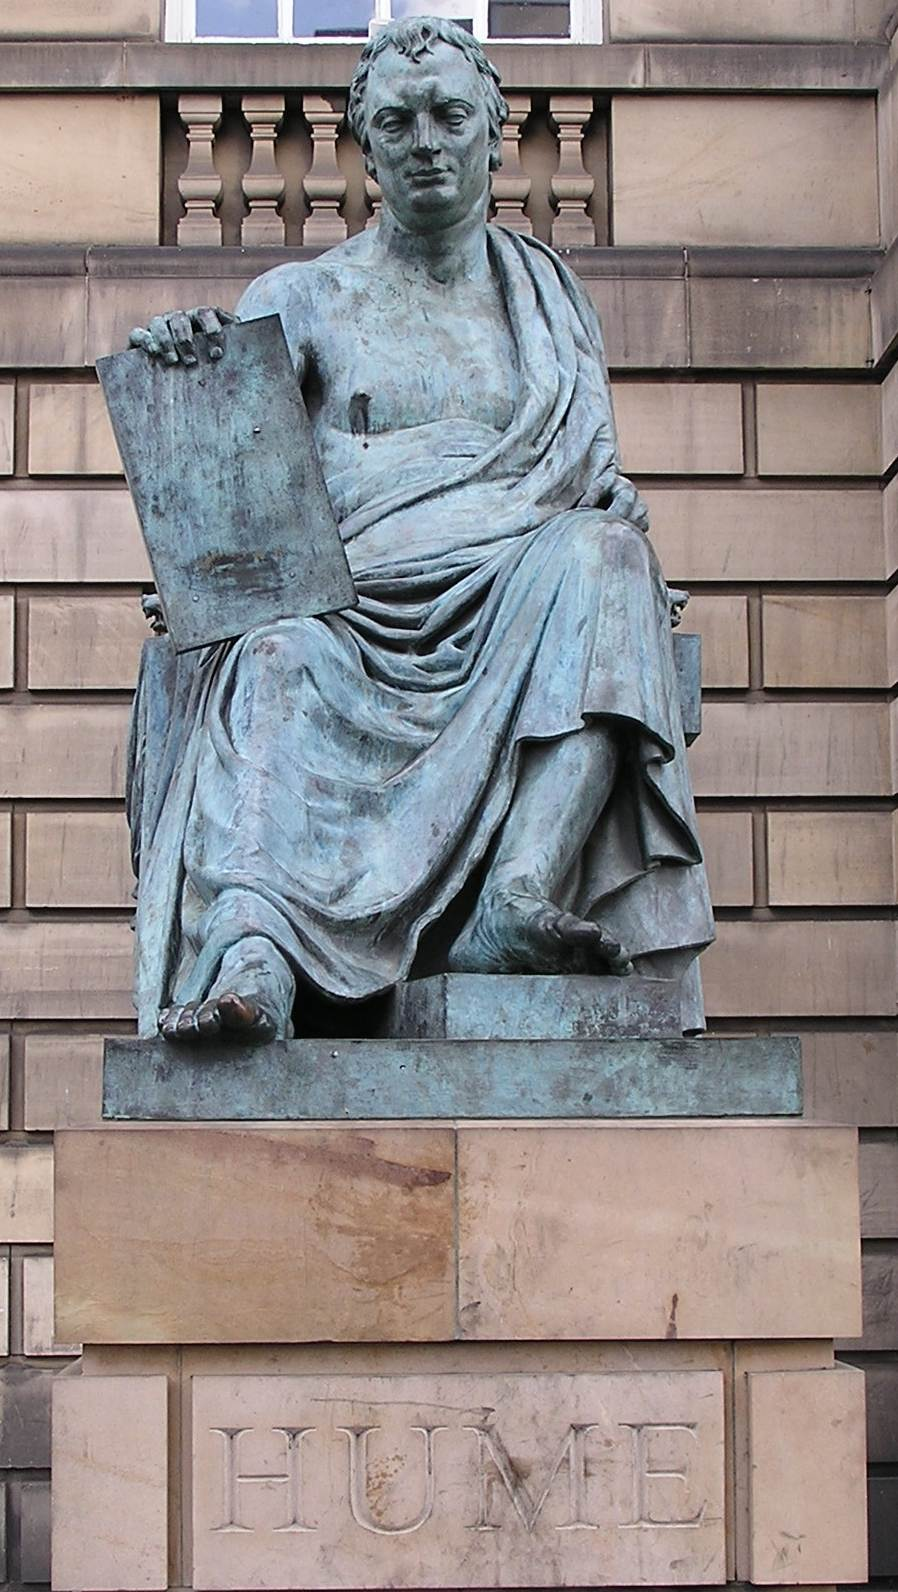 David Hume statue, Edinburgh